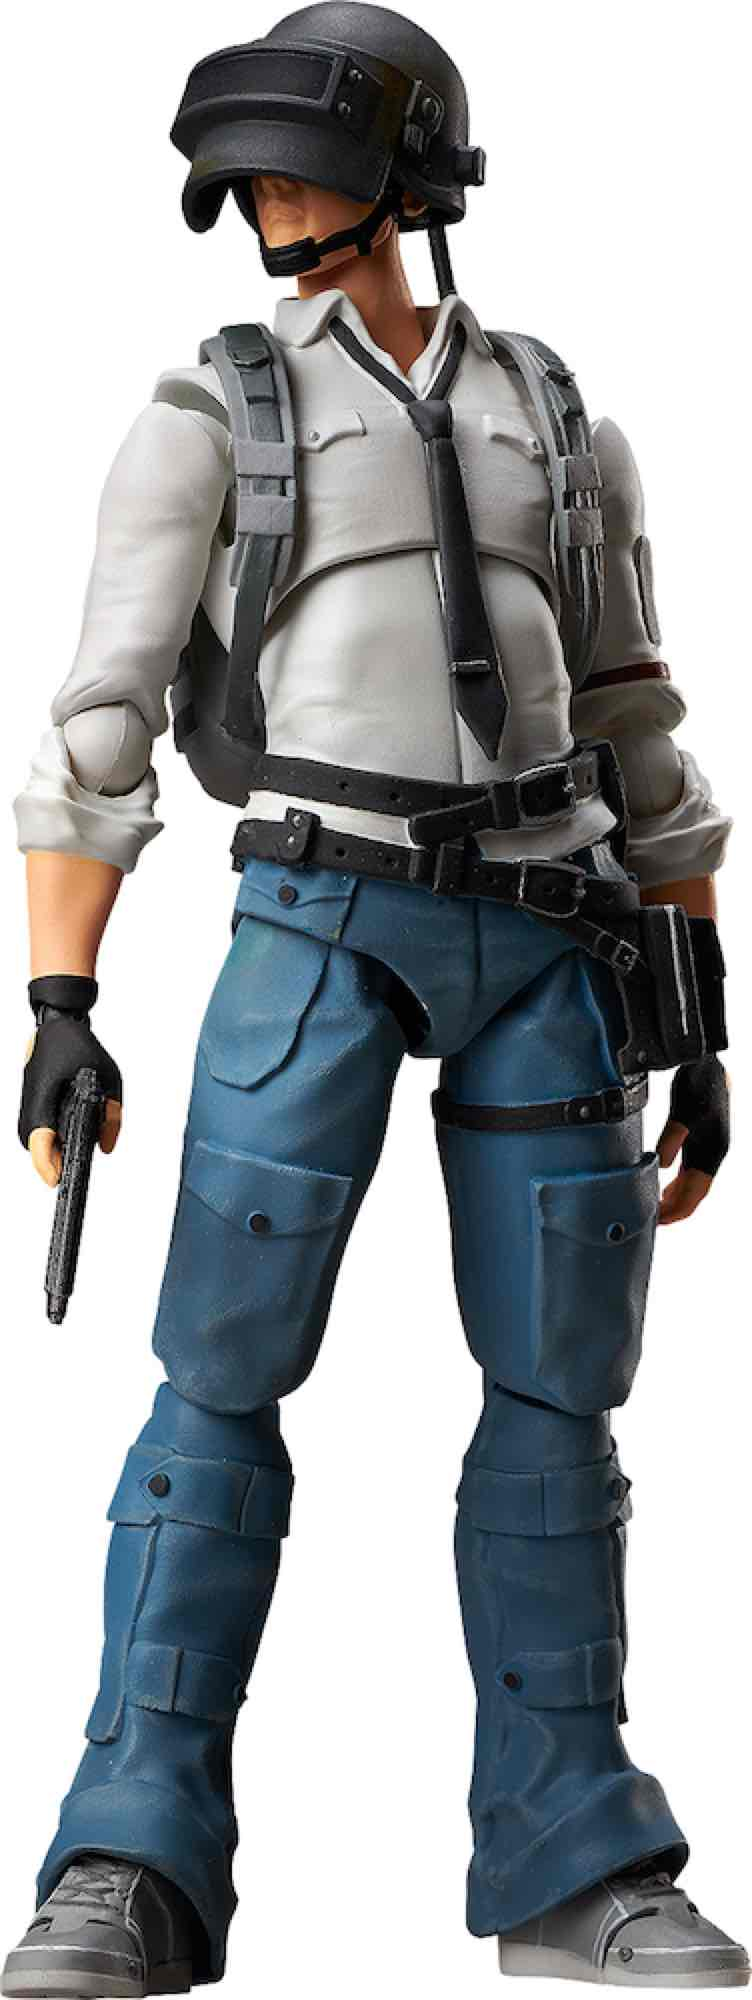 THE LONE SURVIVOR FIGURA 15 CM PLAYERUNKNOWNS BATTLEGROUNDS FIGMA